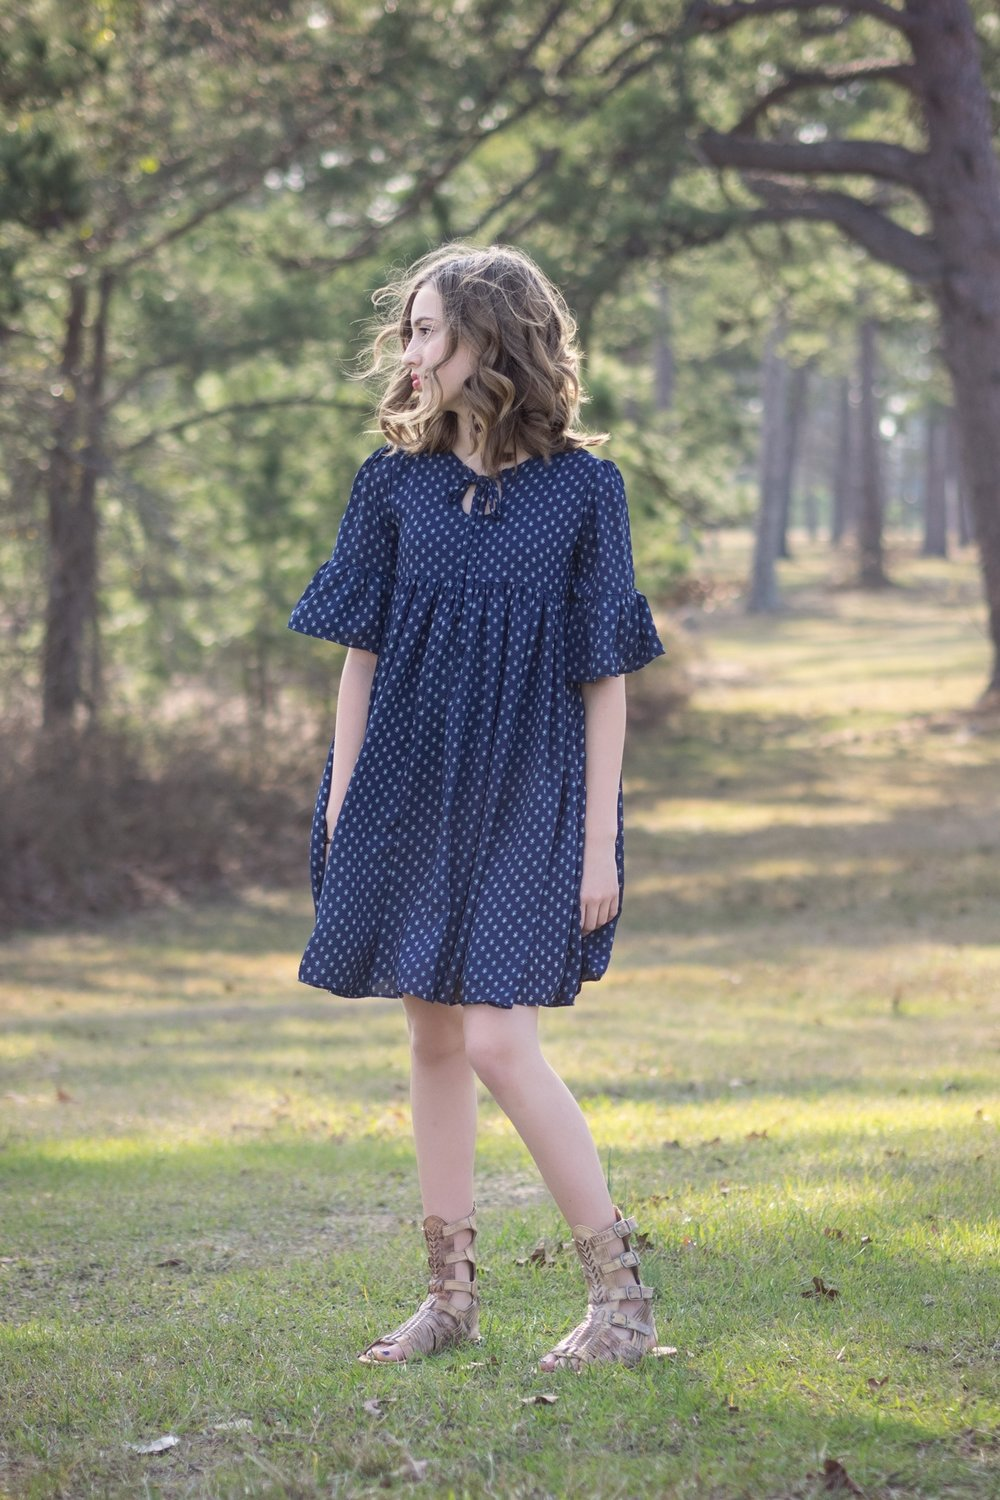 florence-dress-teen-pdf-pattern.jpg